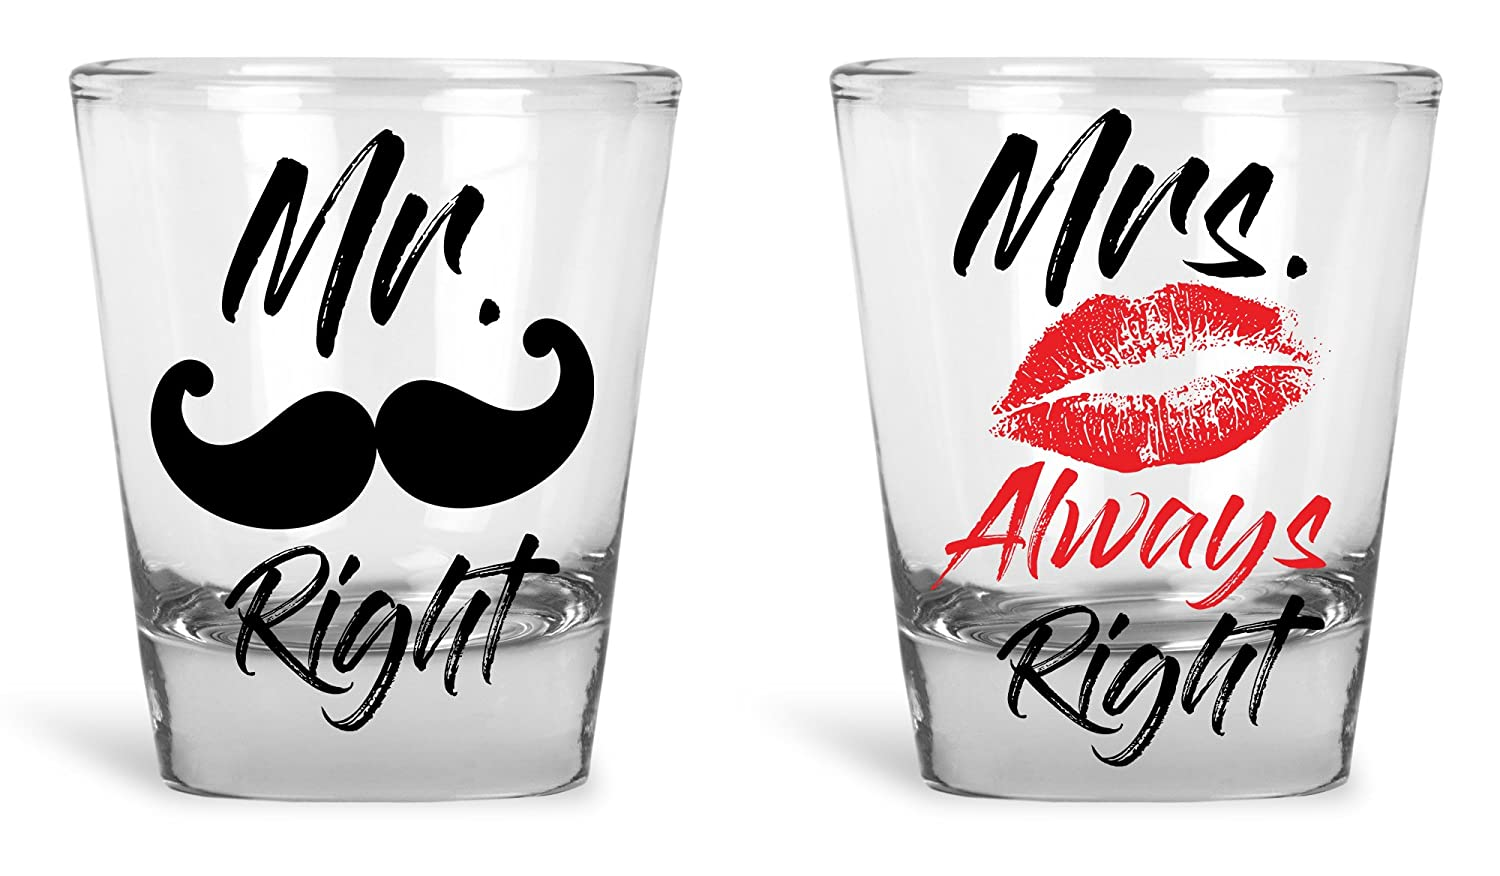 Funny Wedding Gifts For The Couple - Mr. Right and Mrs. Always Right Novelty Shot Glass Set - Bride and Groom Gifts With Box - Engagement, Wedding, Anniversary, Holiday Gifts by Funny Bone Products